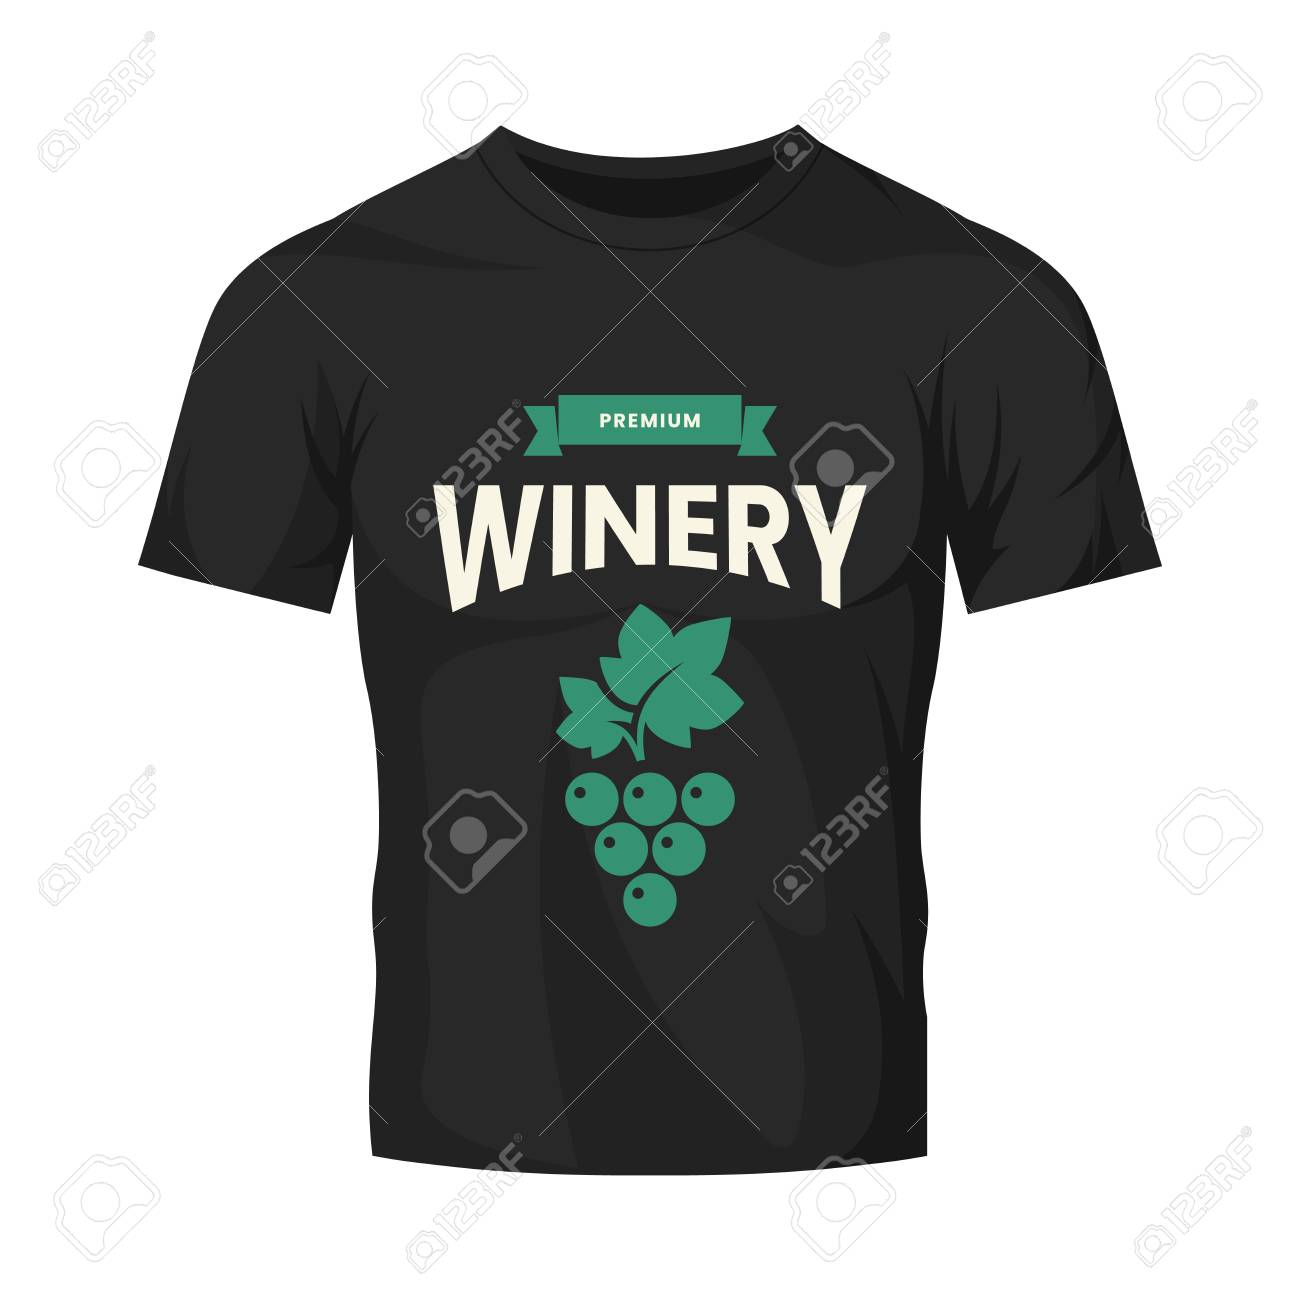 Modern wine vector logo sign for tavern, restaurant, house, shop, store, club and cellar isolated on black t-shirt mock up. Premium quality vinery logotype illustration. Fashion badge design template. - 120438819